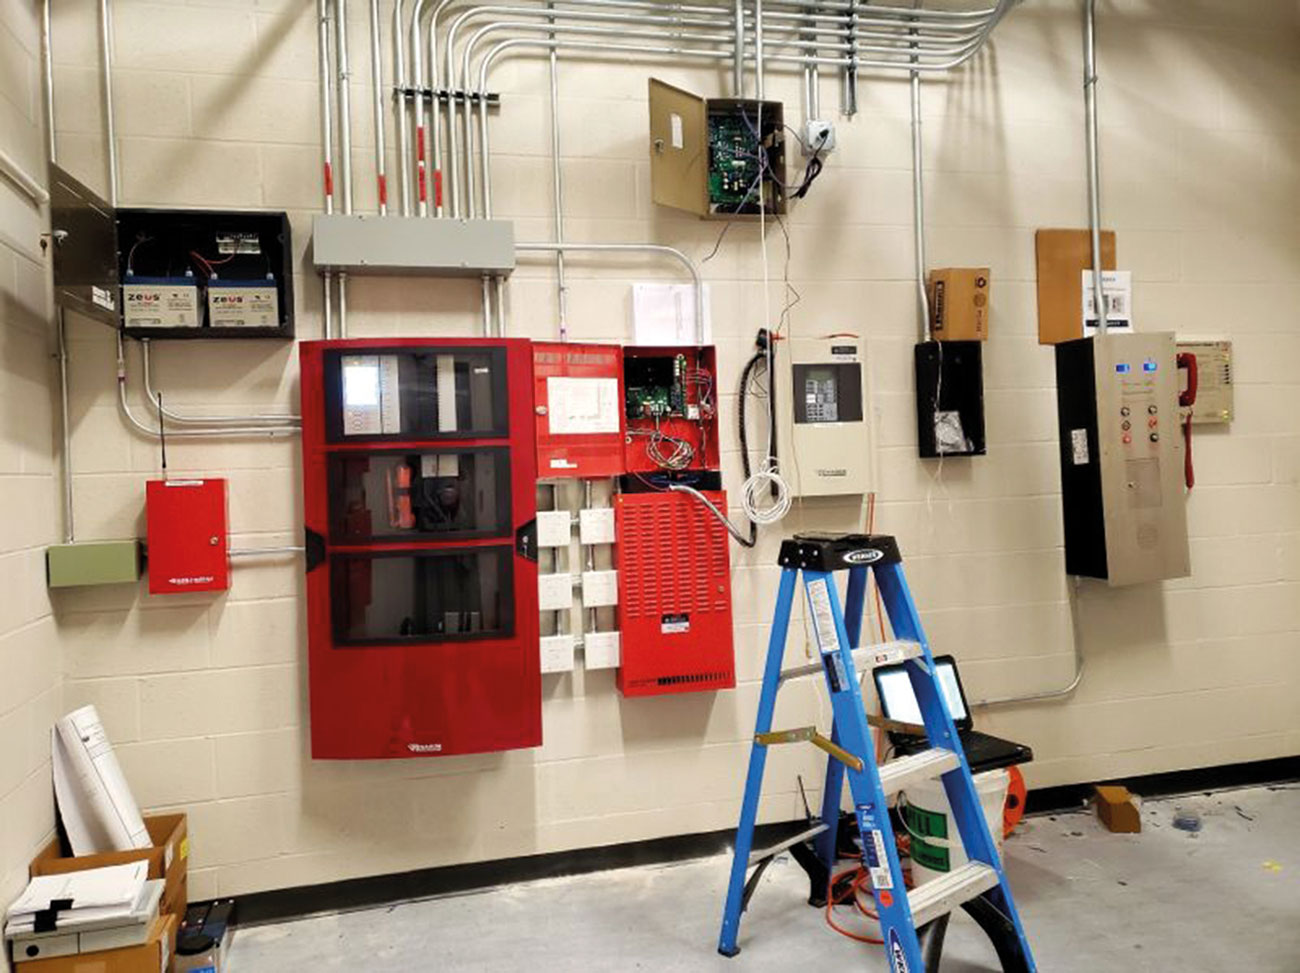 Fire alarm control room under construction that shows a fire alarm panel and integrated system controls.